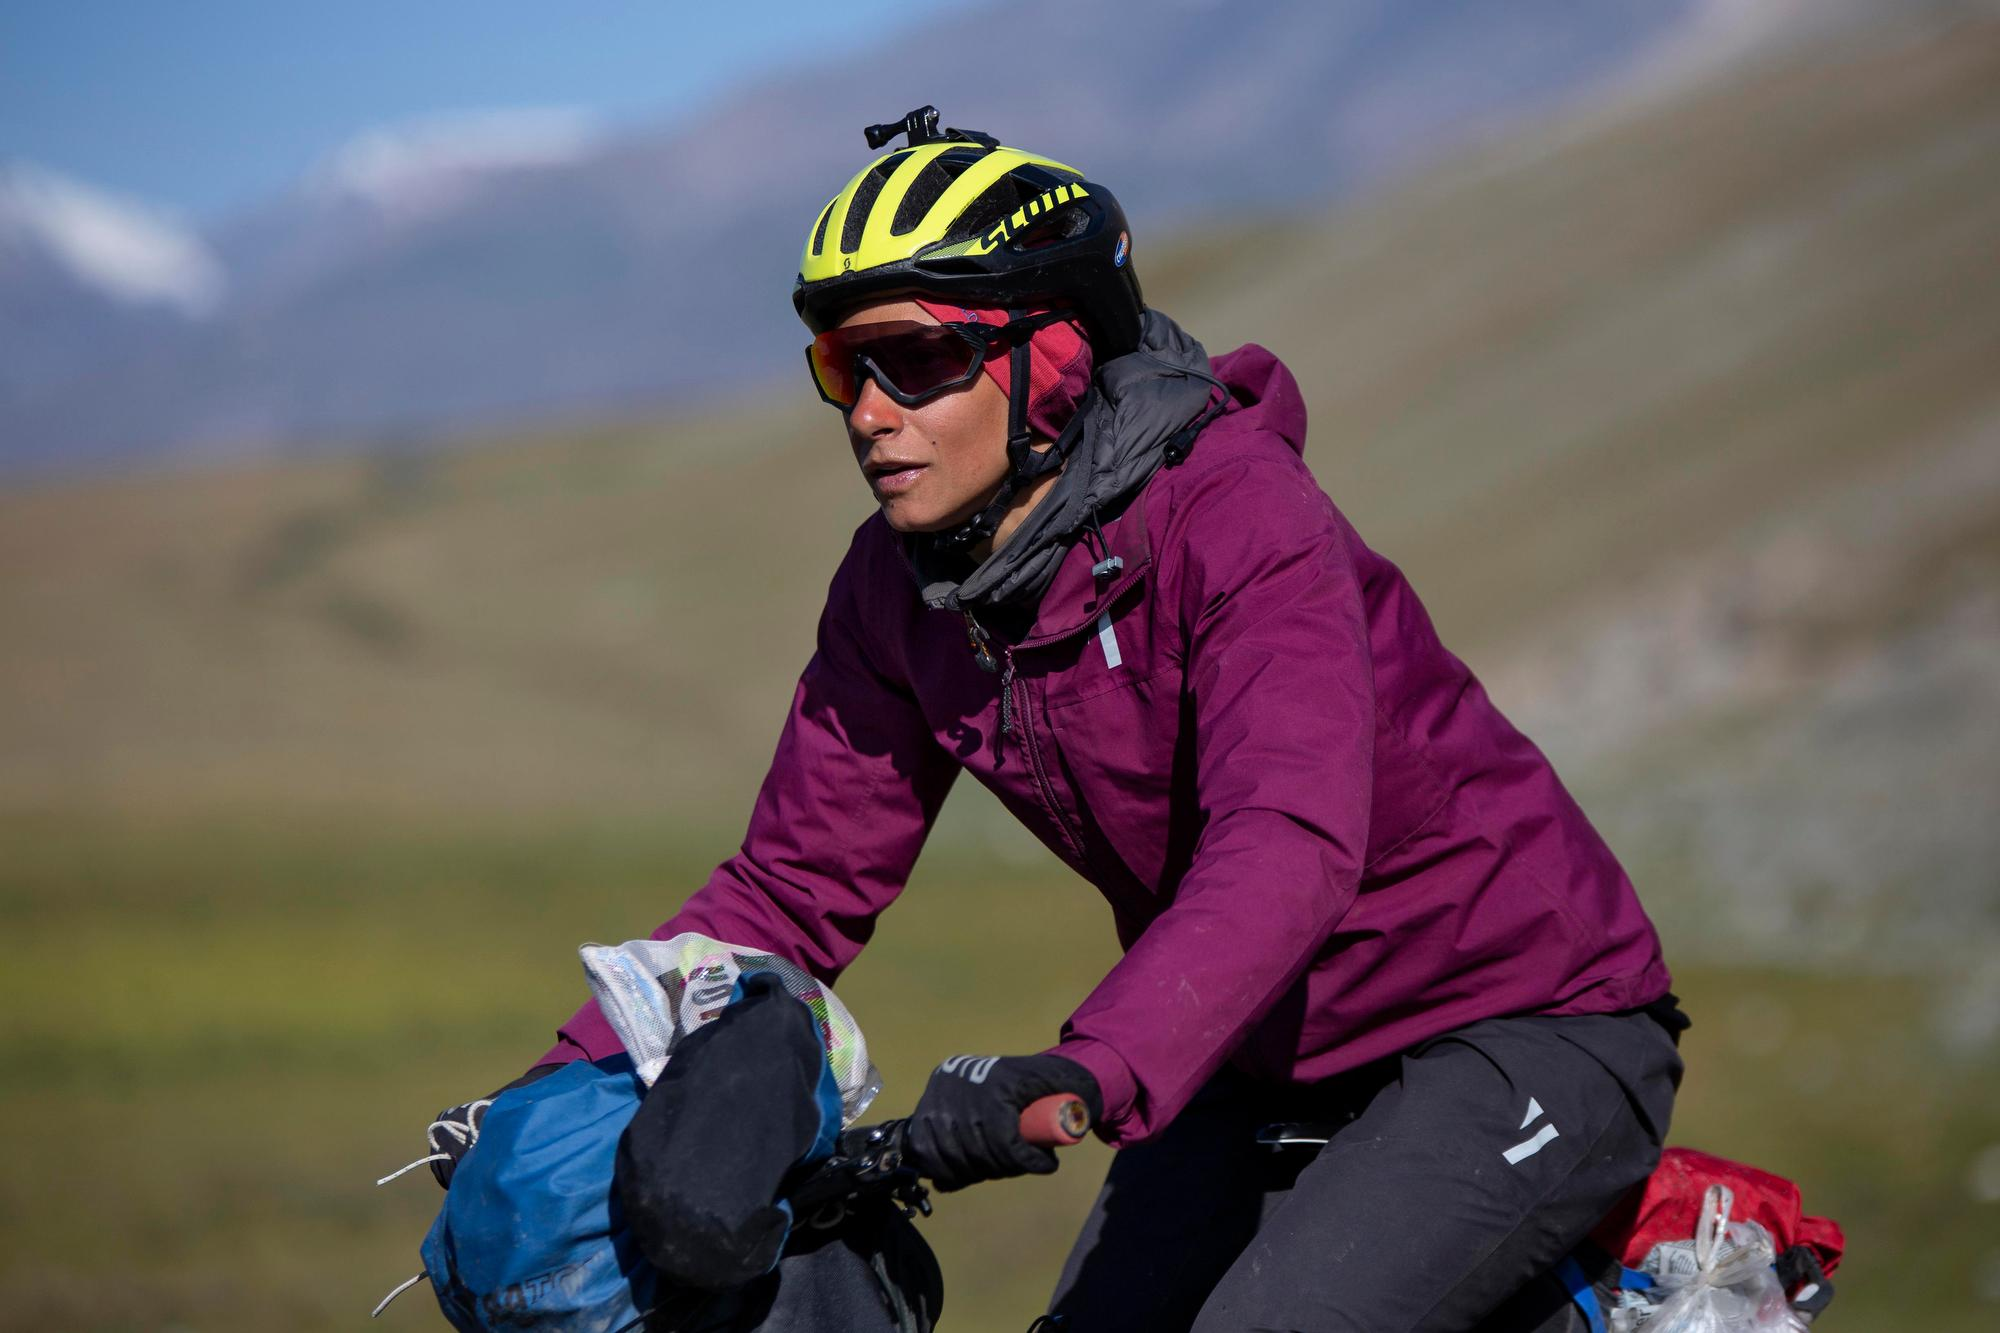 Sue Paz Thunstrom rides towards checkpoint three. (Rugile Kaladyte)